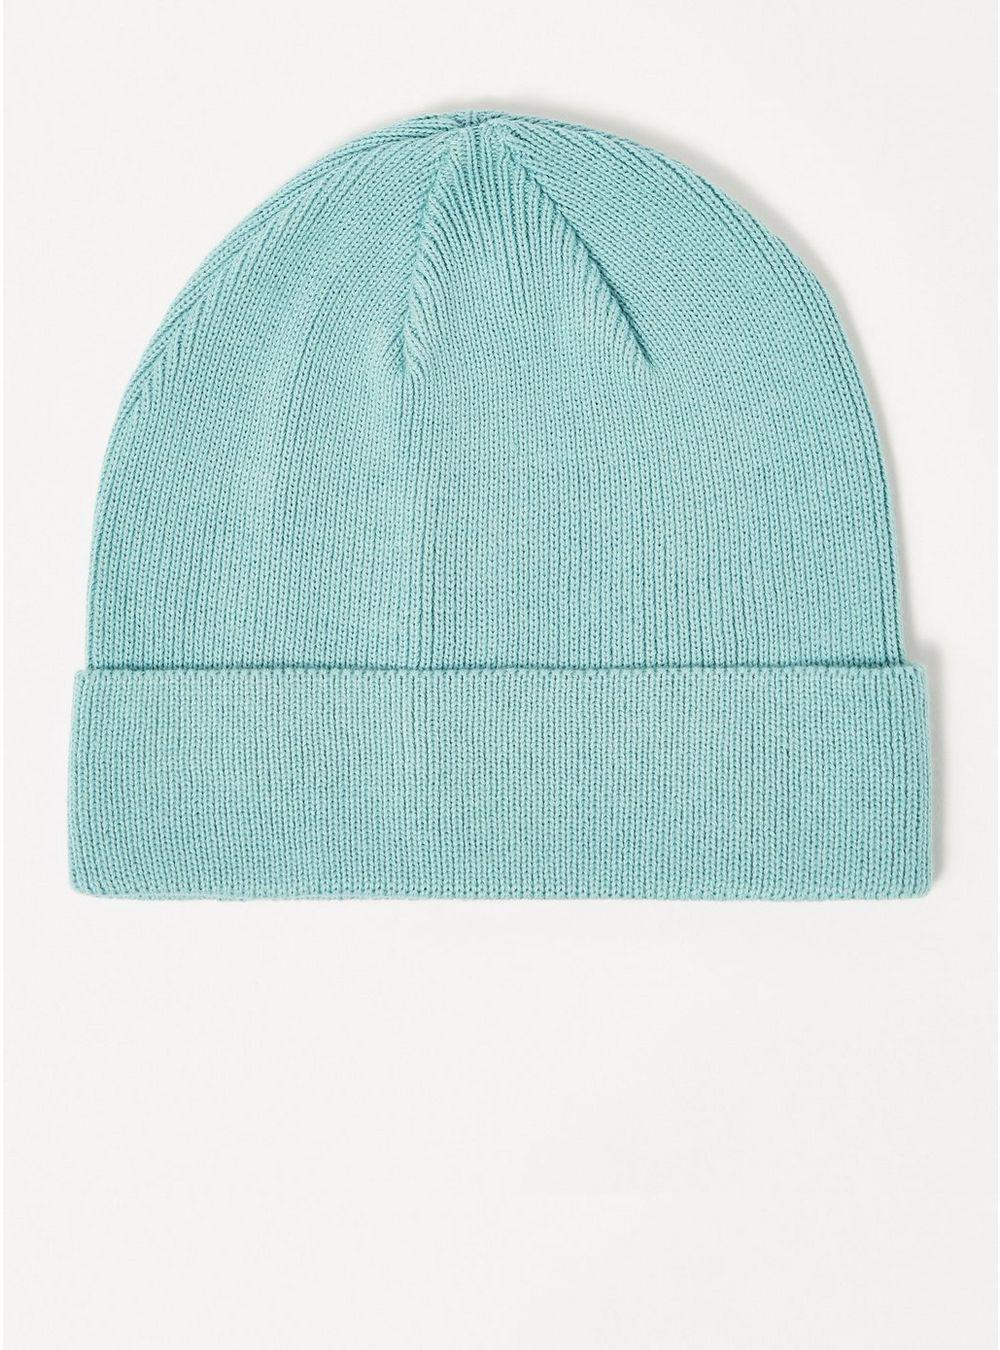 Topman Aqua Blue Cotton Mix Skater Beanie in Blue for Men - Lyst c3e7fd60c6ae